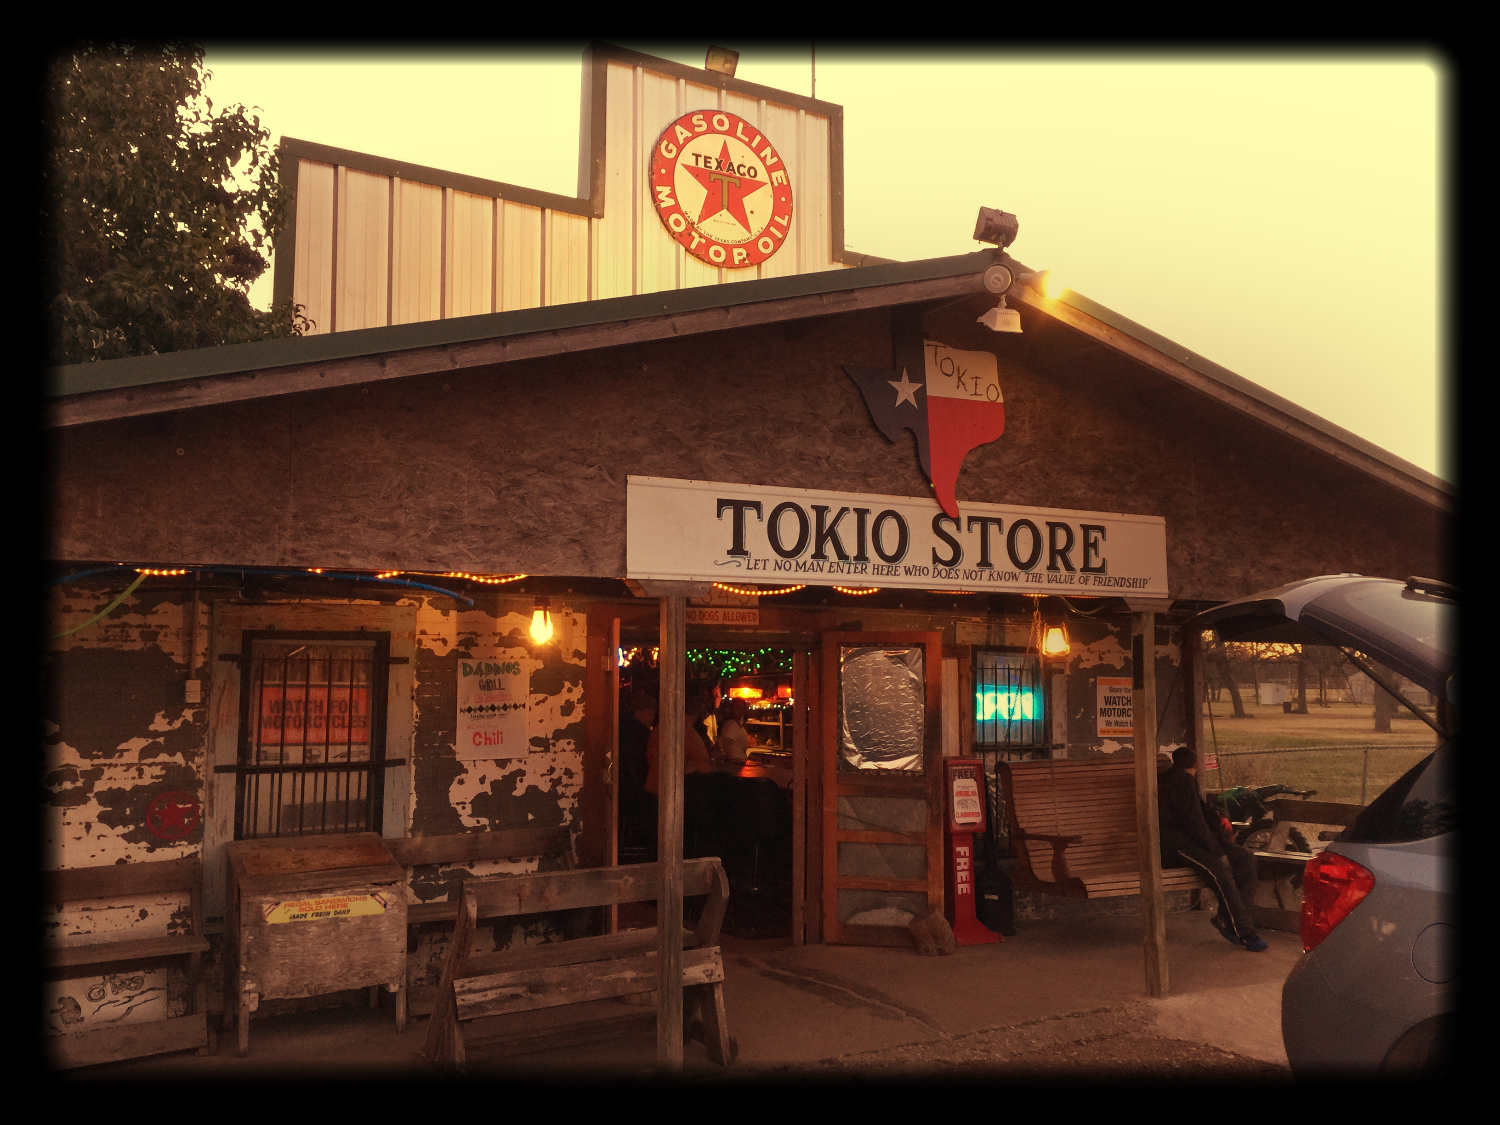 Tokio Store in West, TX FEB 20th